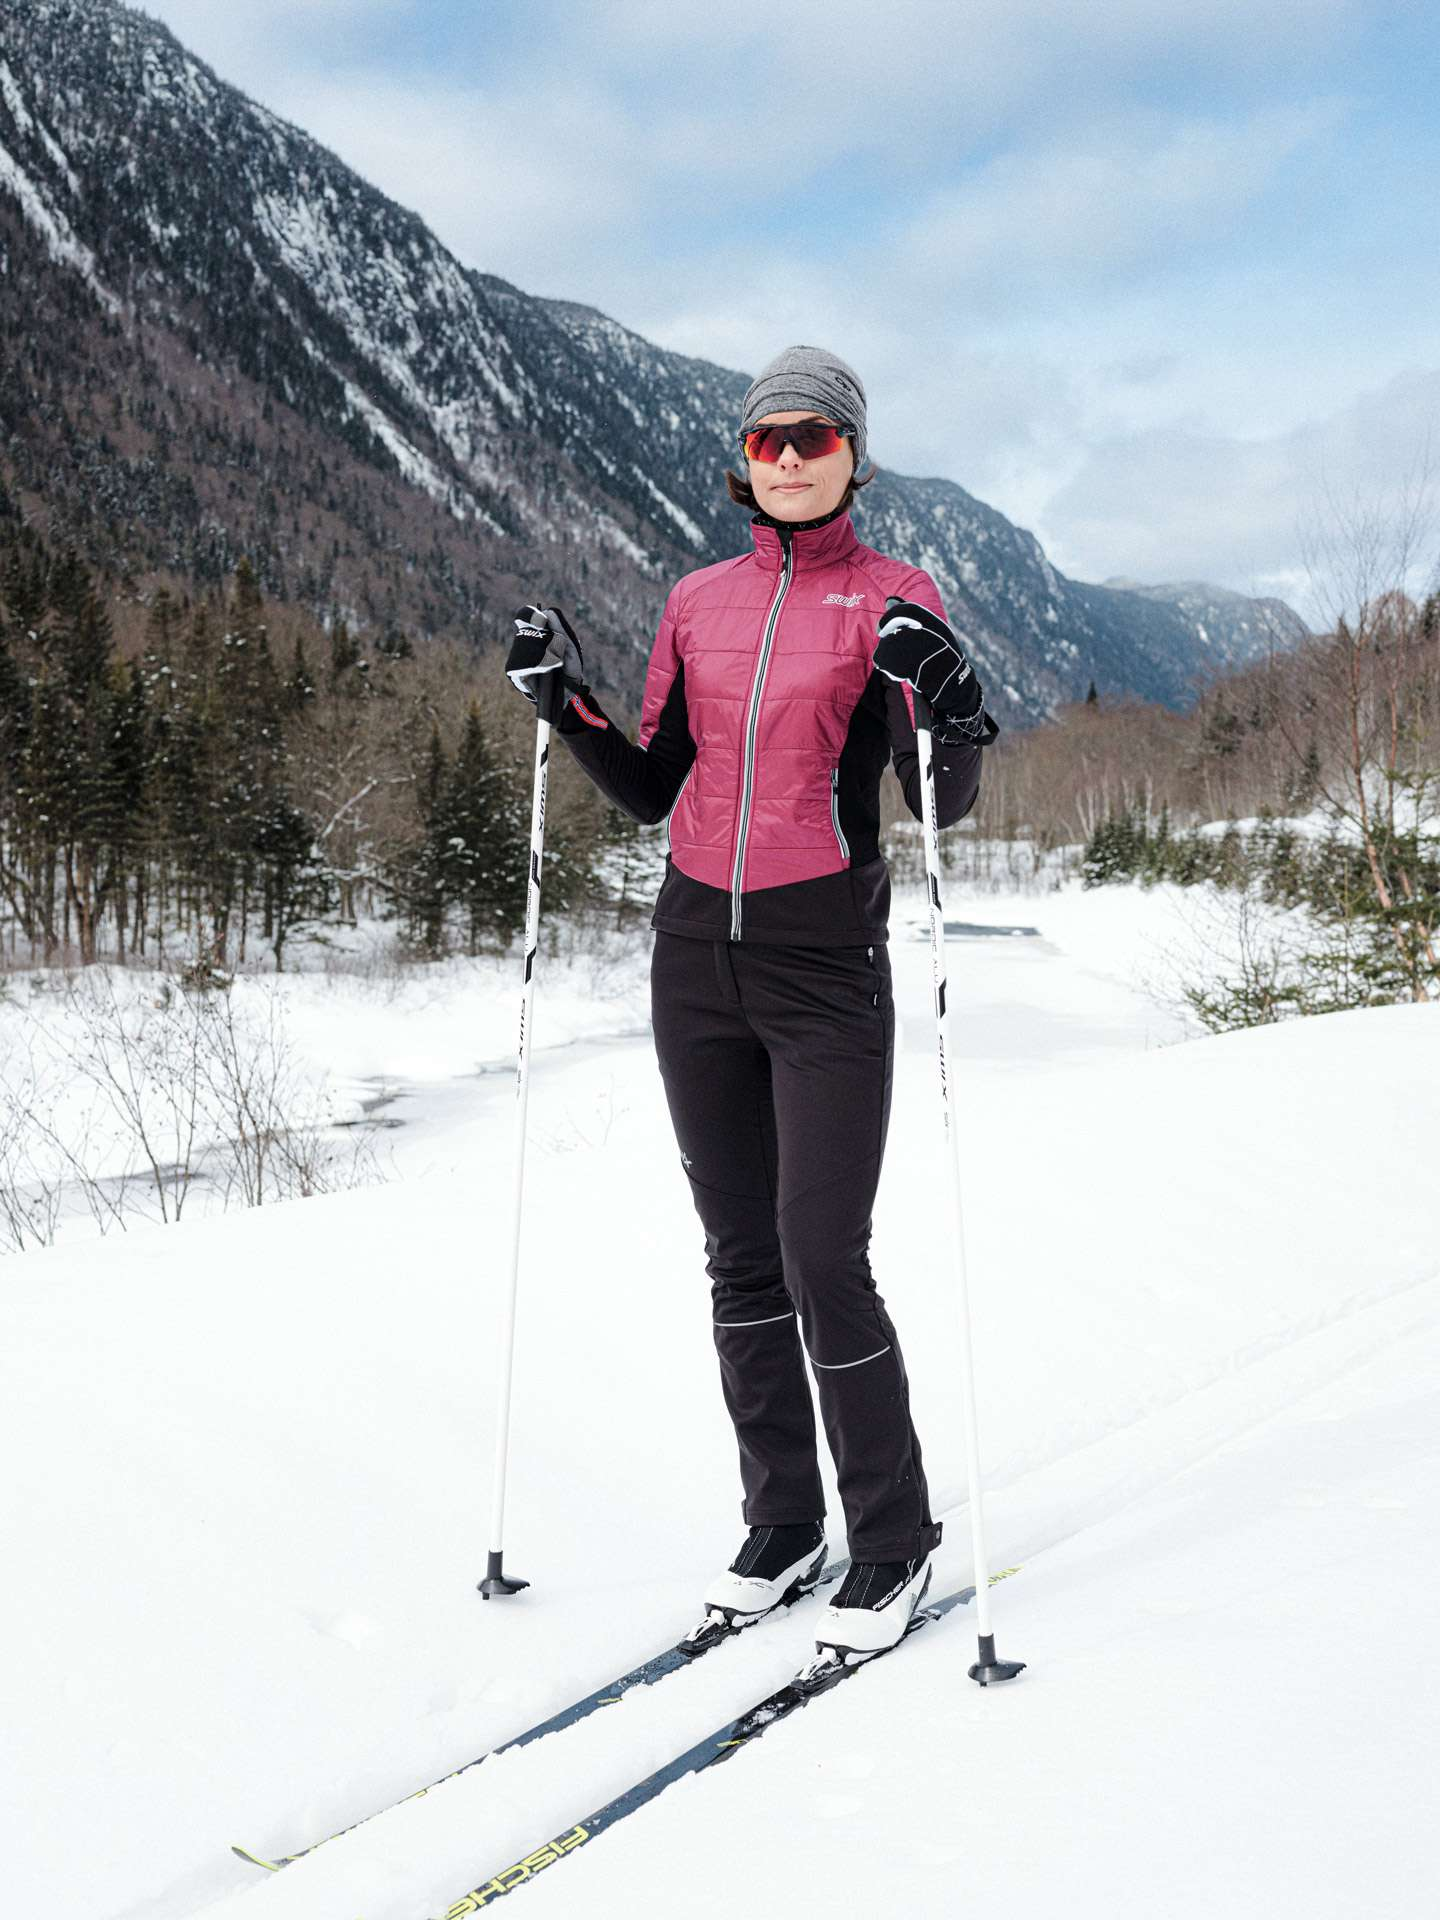 Sail sports gear photographed by Alexi Hobbs of woman in pink cross-country skiing gear